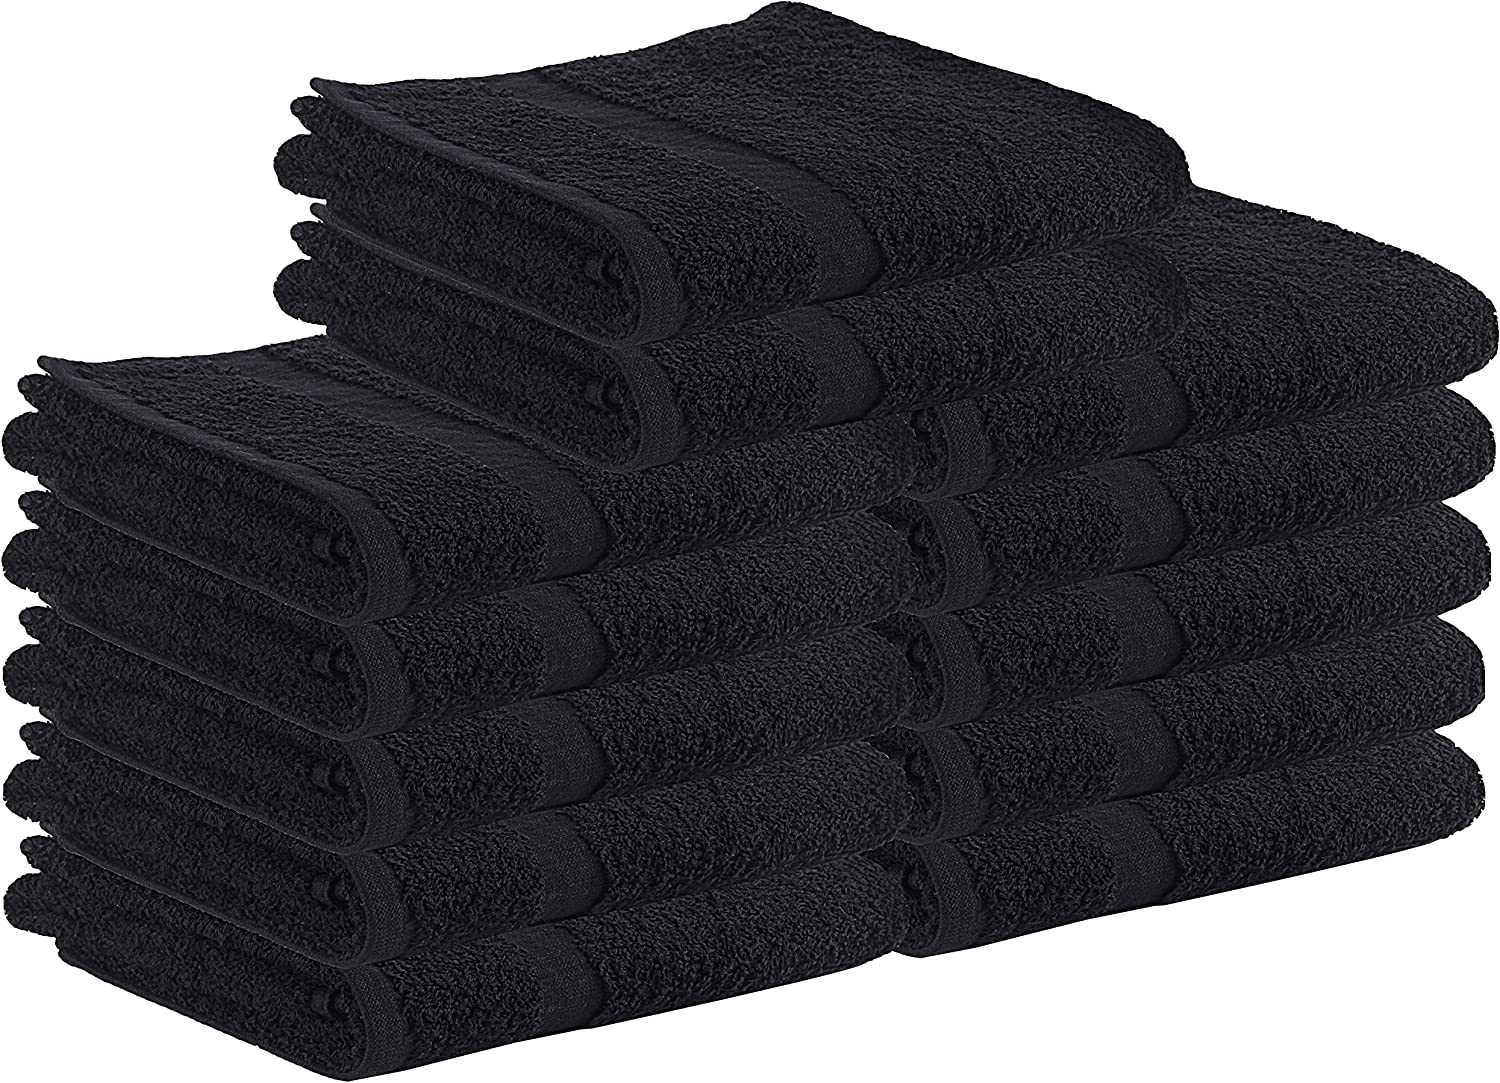 Utopia Towels Salon Towels, 24 Pack (Not Bleach Proof, 16 x 27 Inches, Black) Hand Towels, Gym Towels